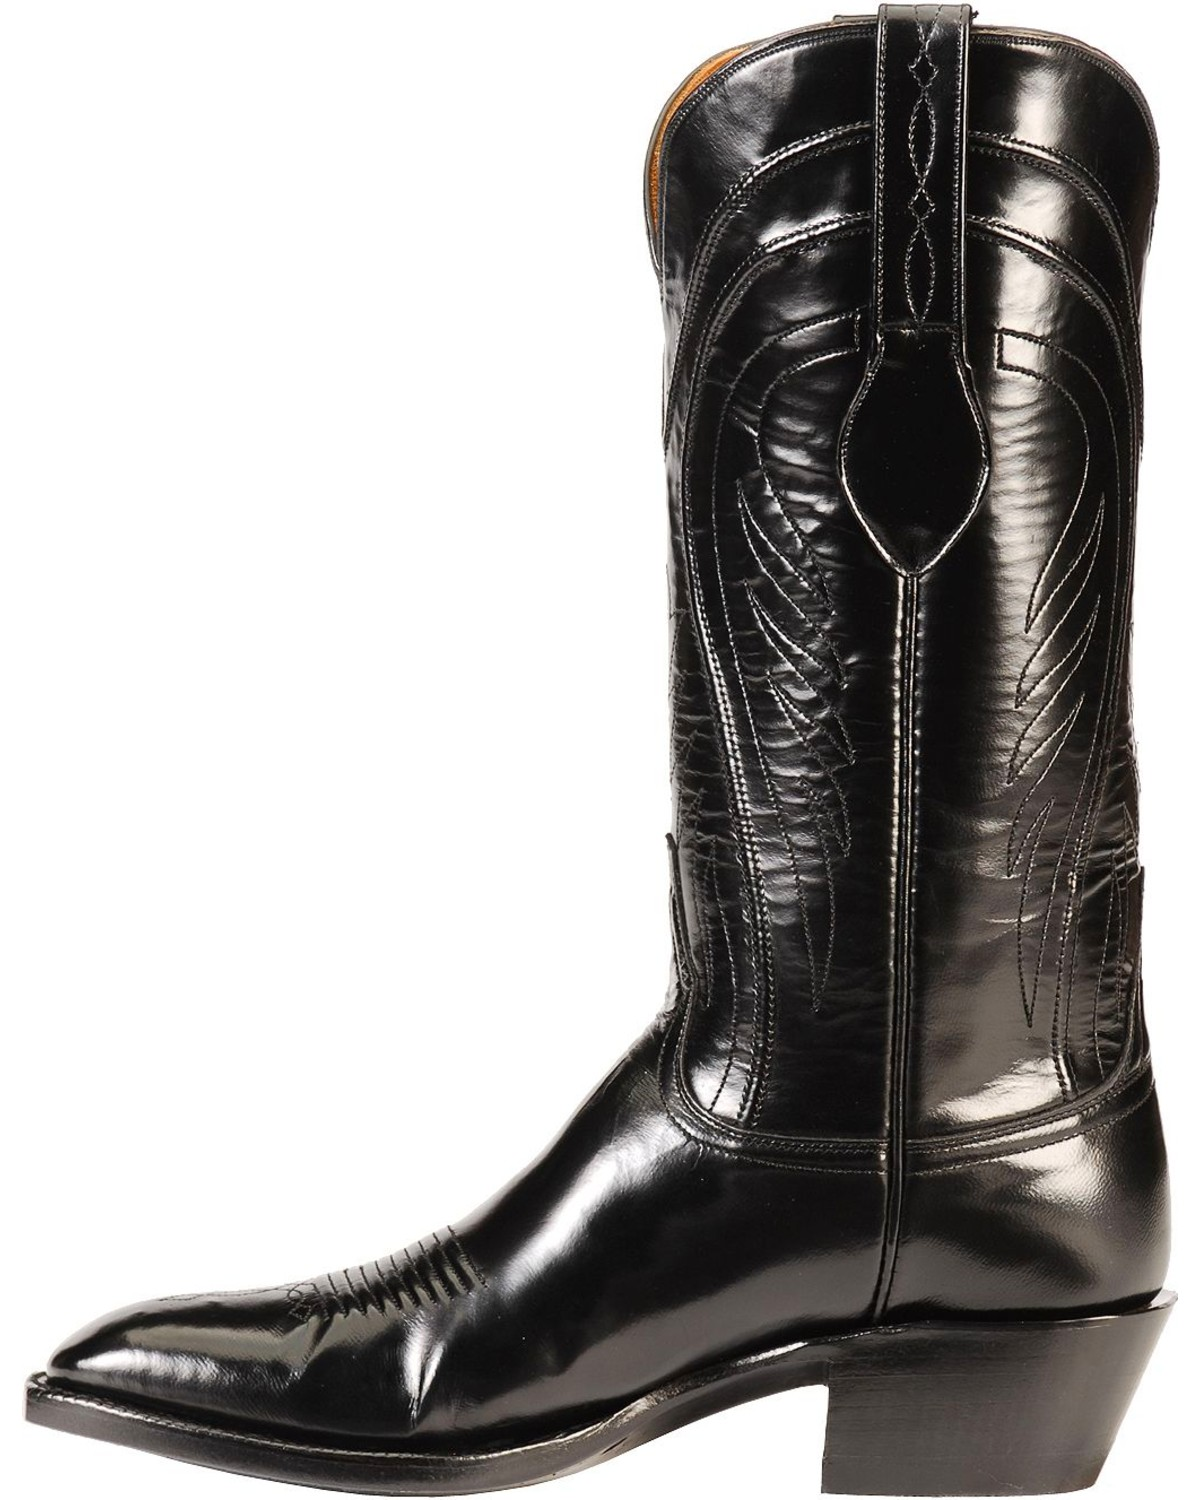 Lucchese Handcrafted Classics Seville Goatskin Boots